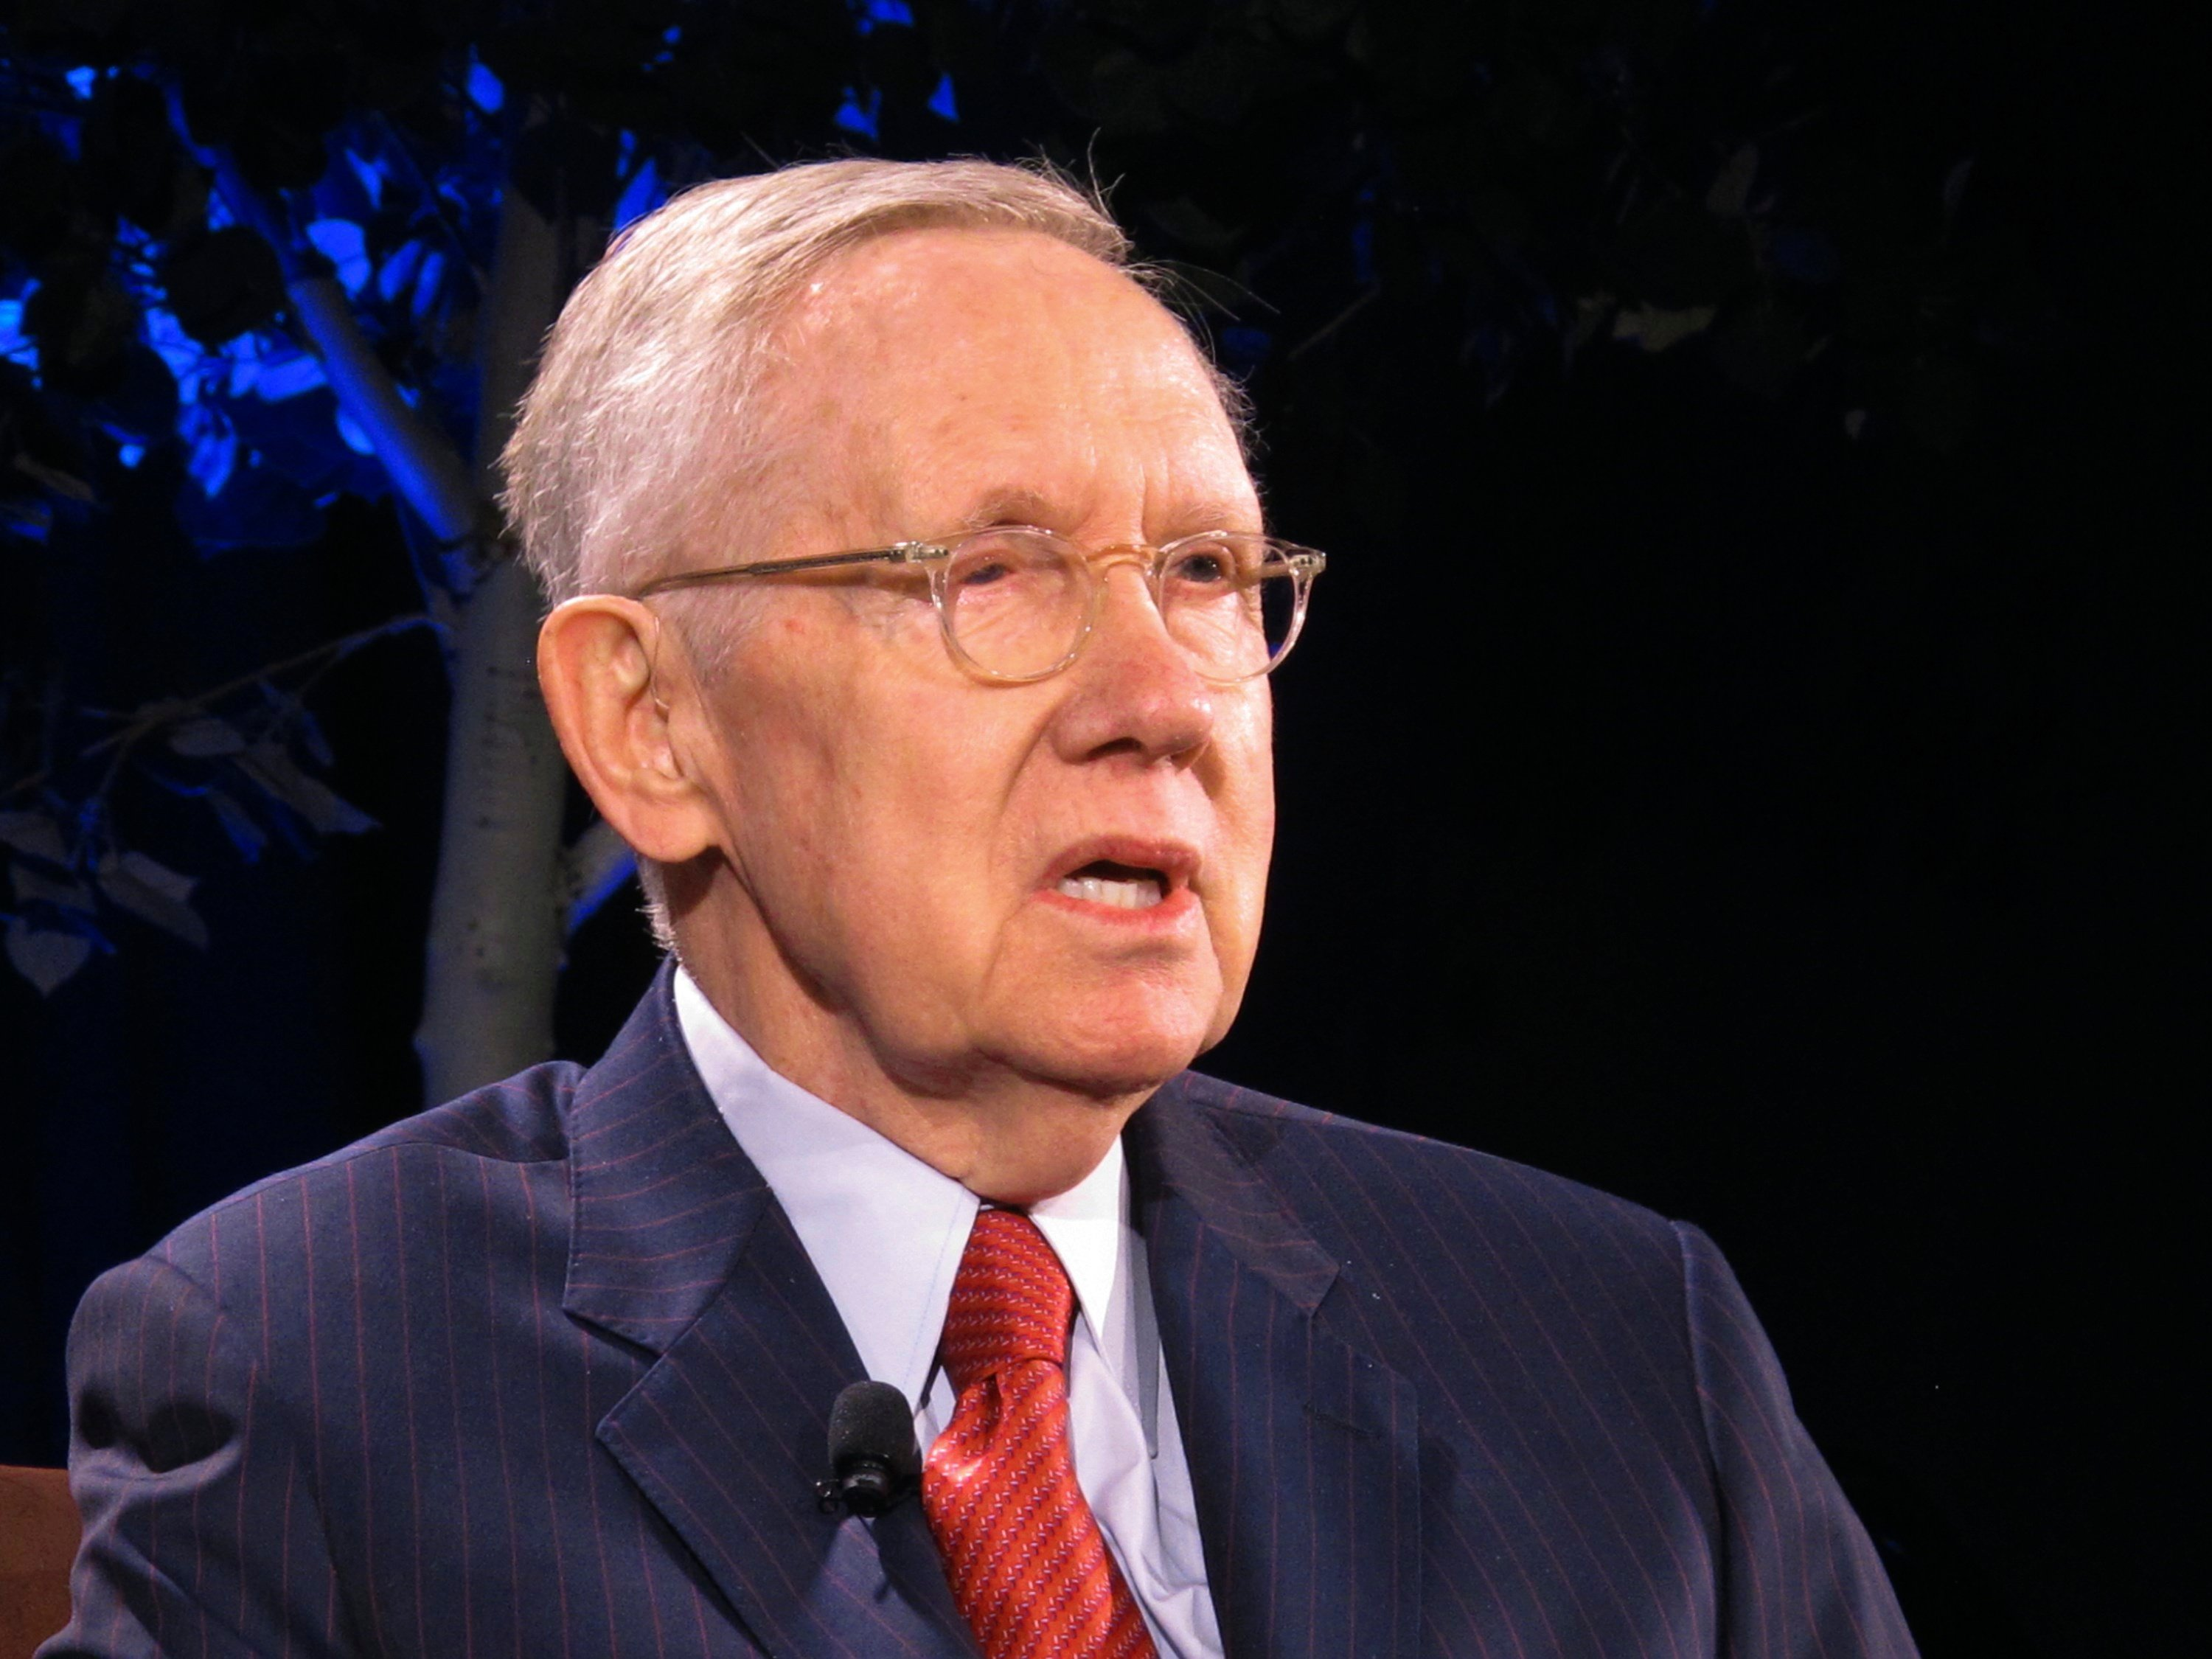 Former senator Harry Reid undergoes surgery for pancreatic cancer